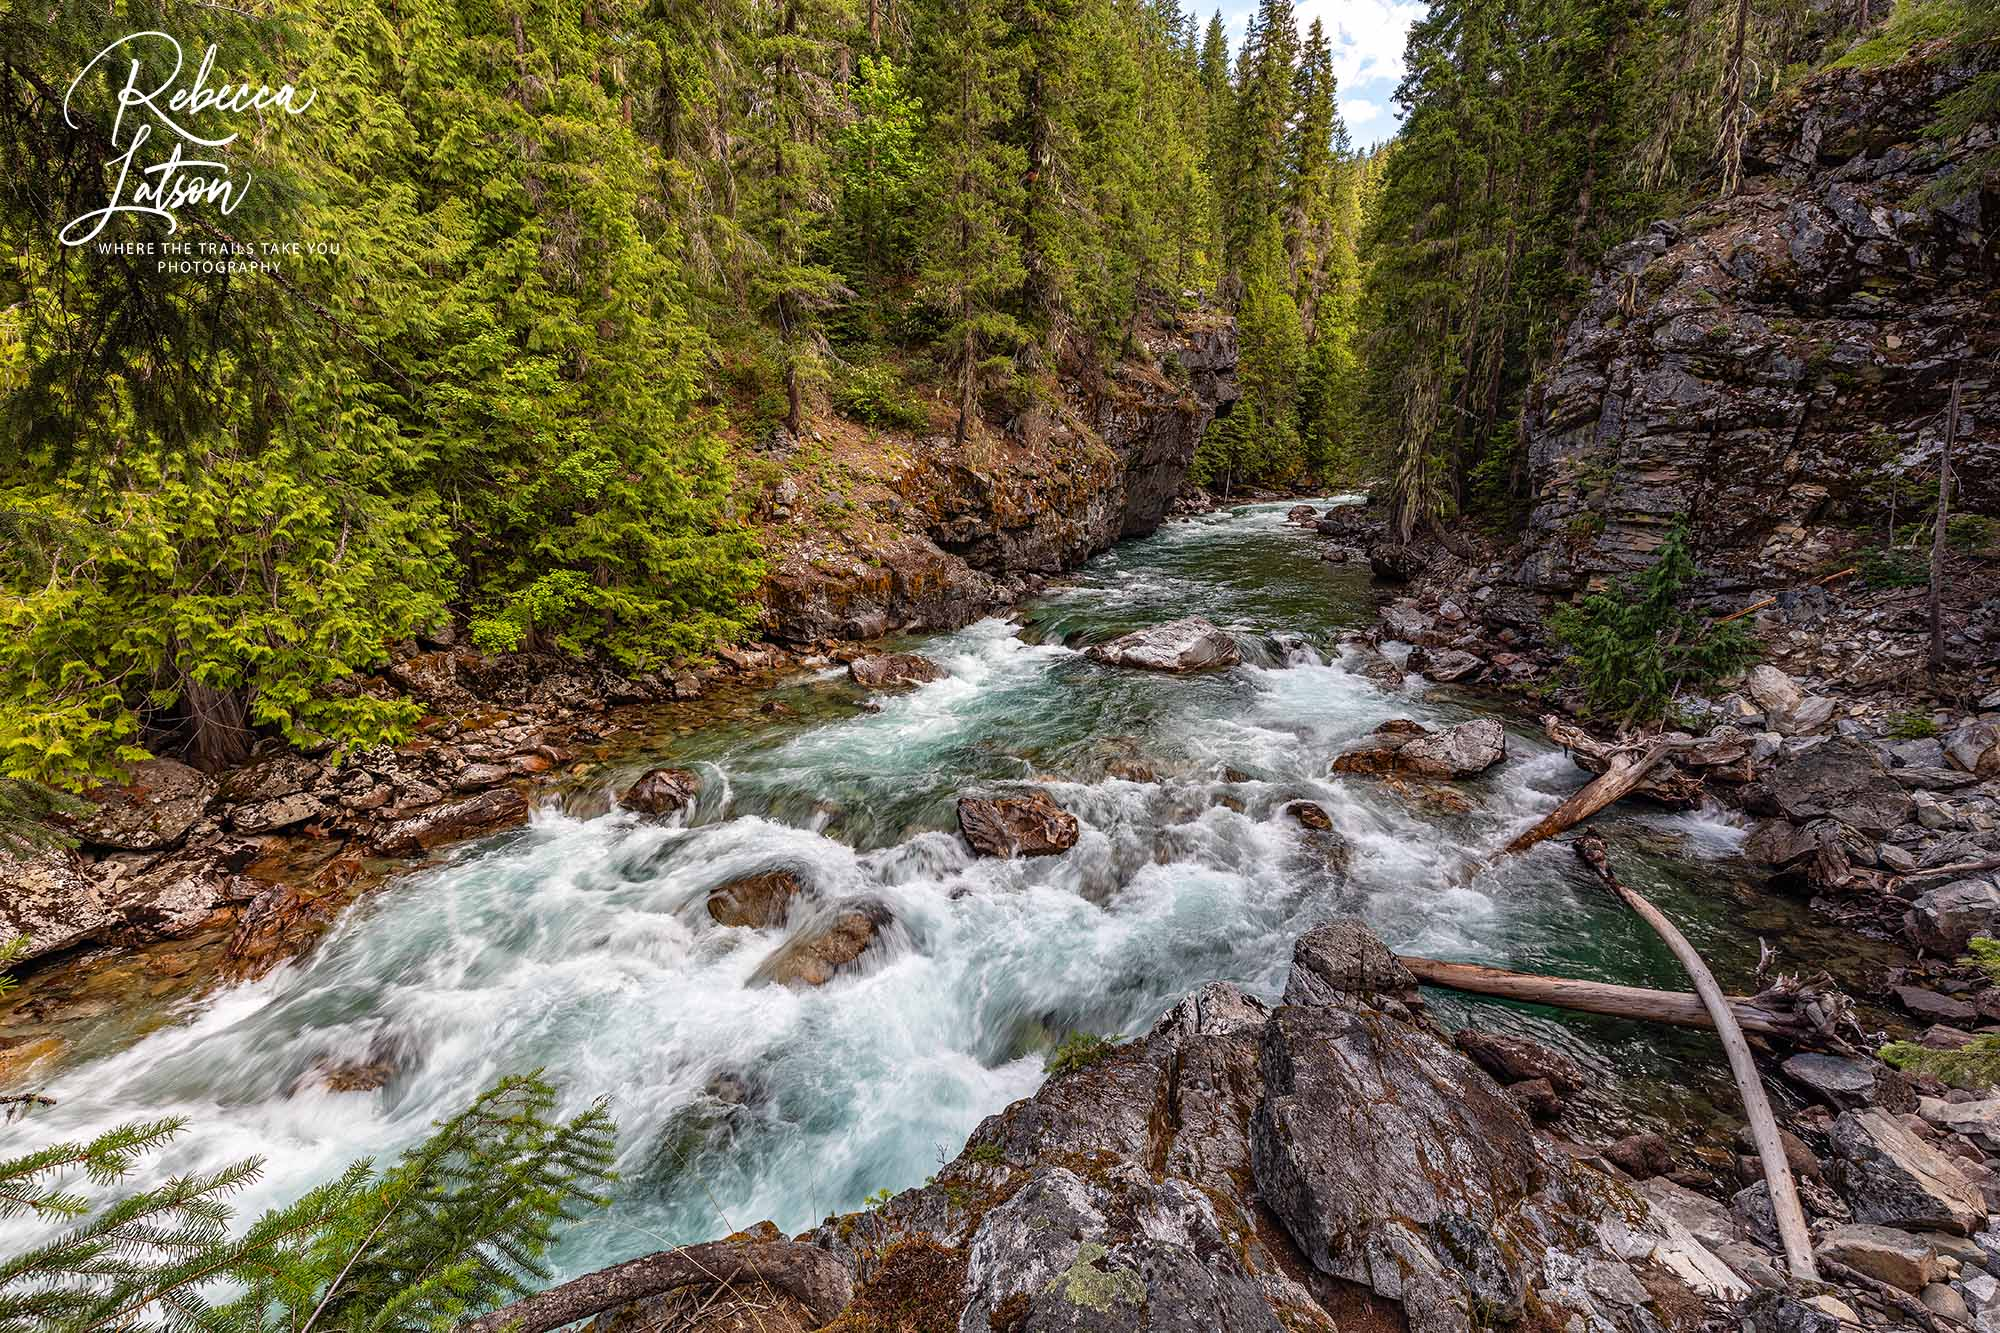 The Stehekin River At High Bridge